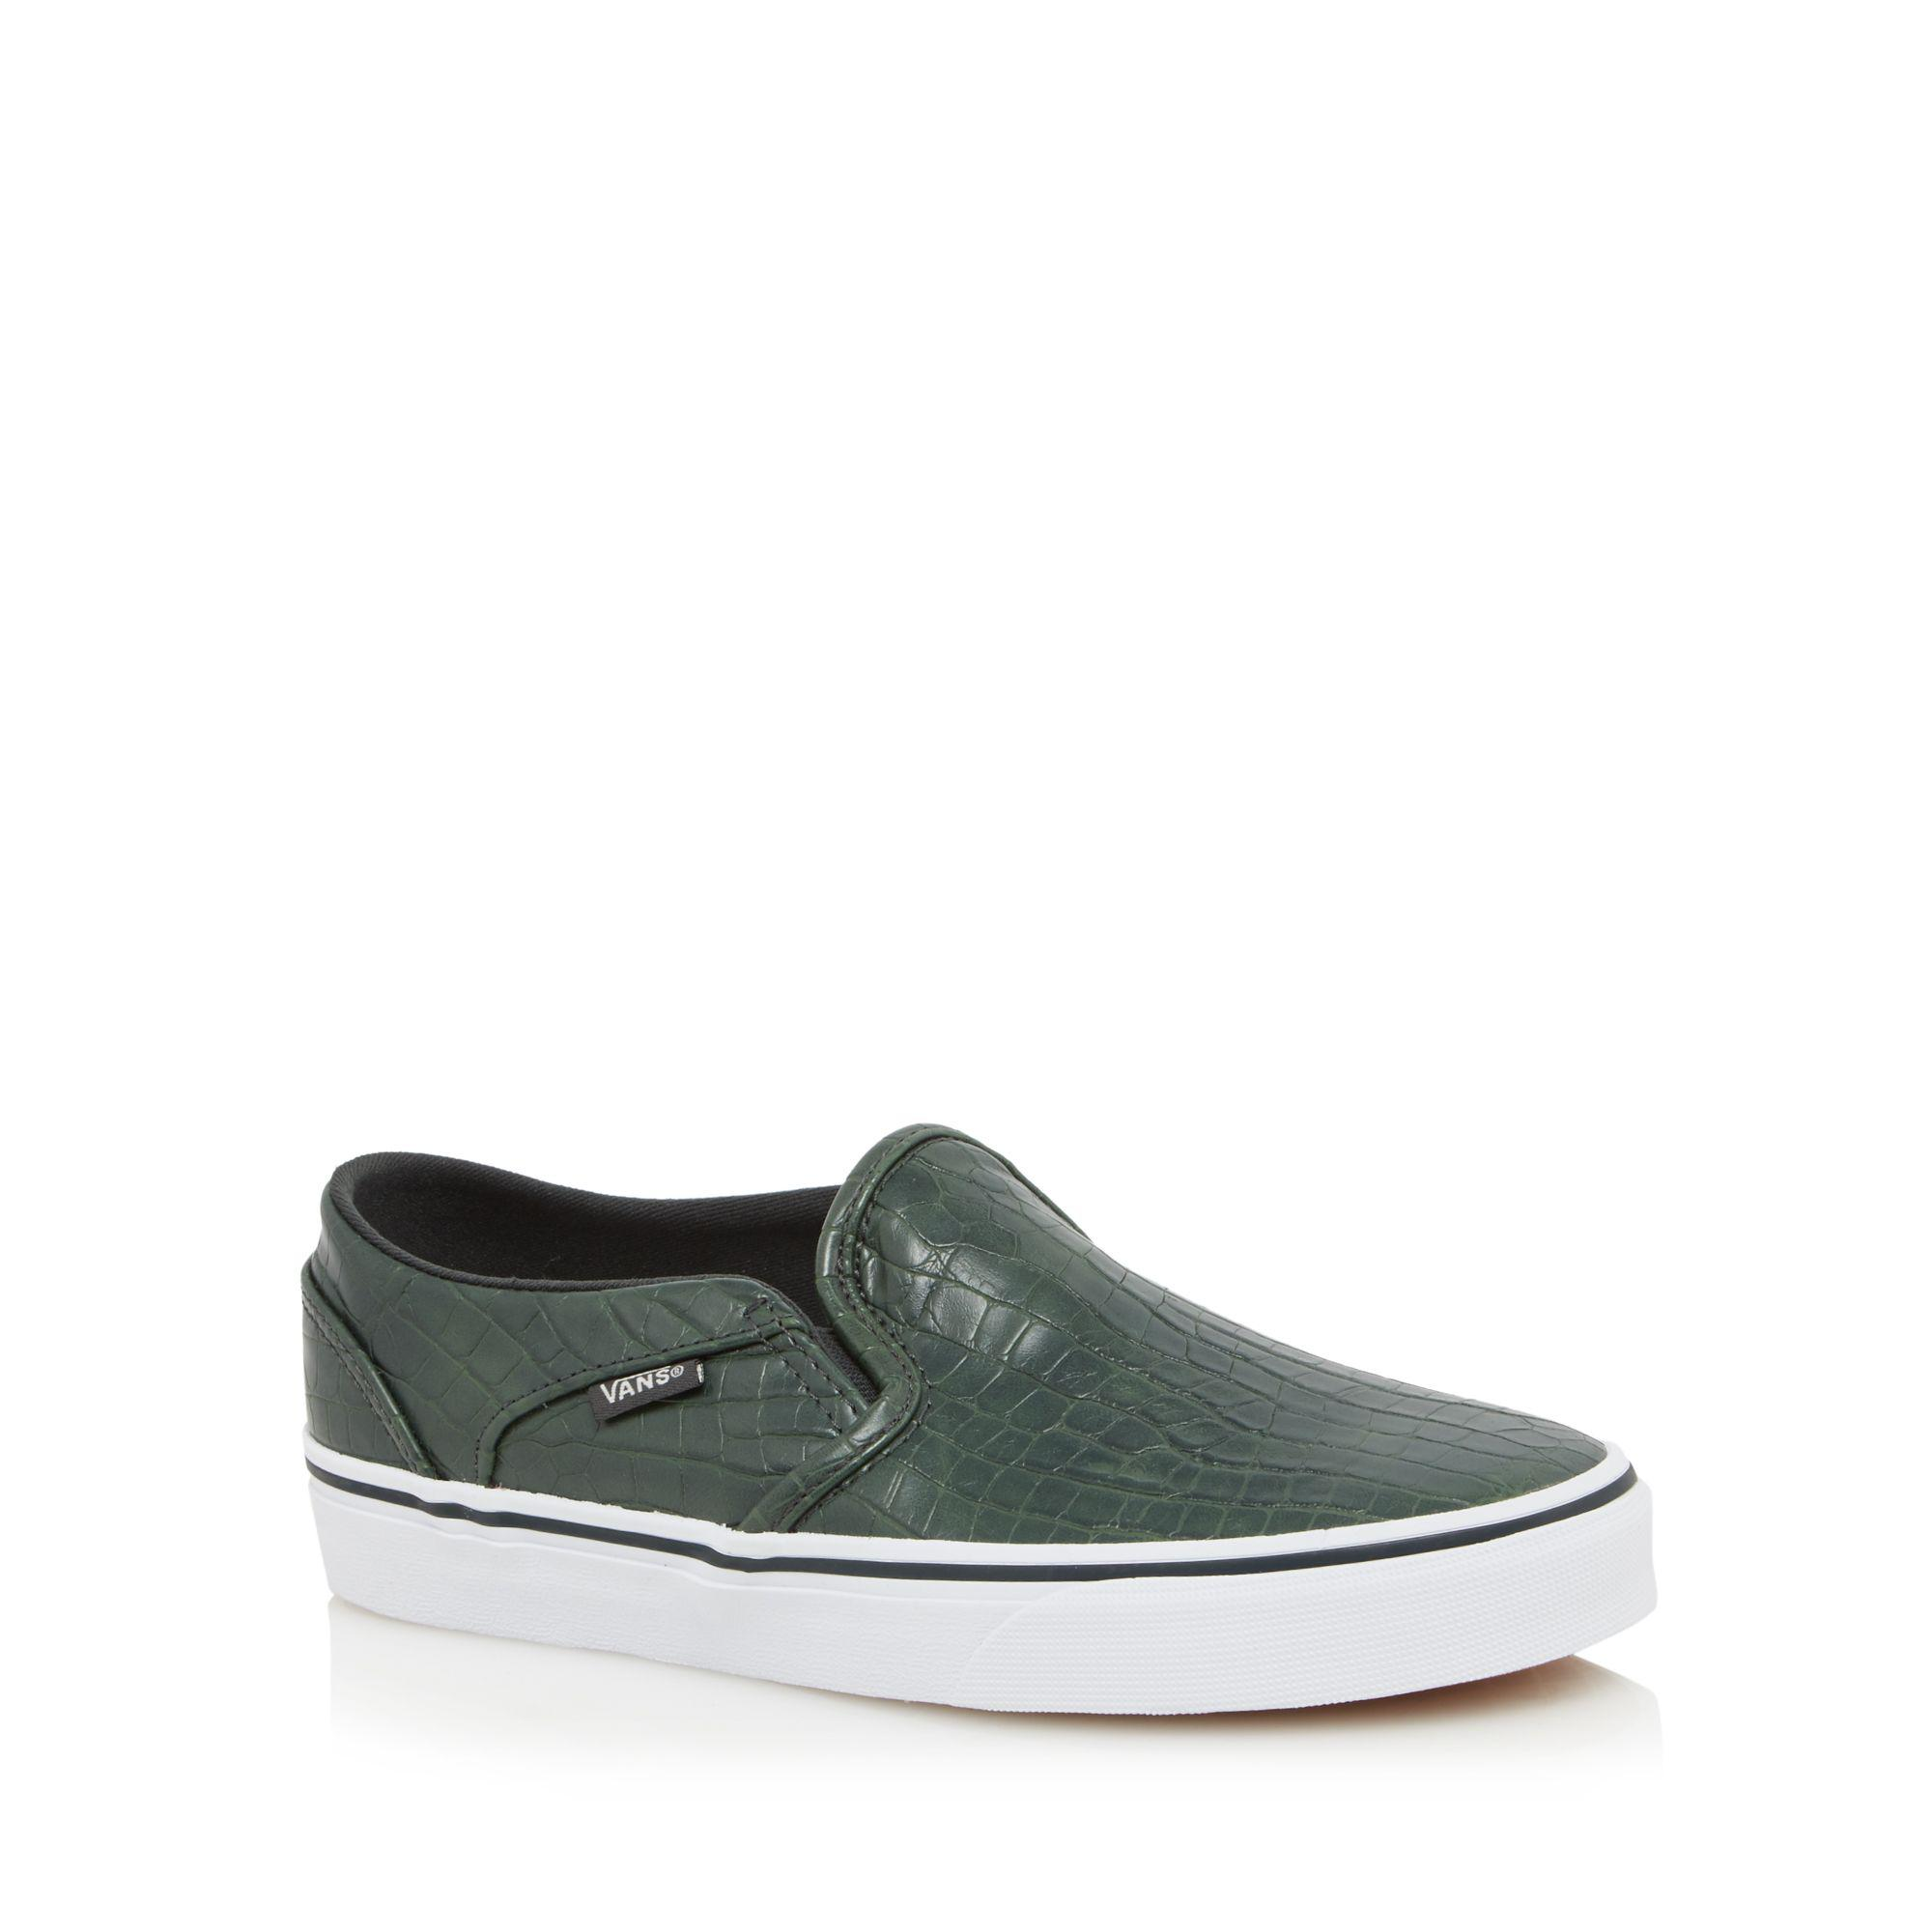 e3510becff Vans Dark Green Faux Croc Textured  asher  Trainers in Green - Lyst